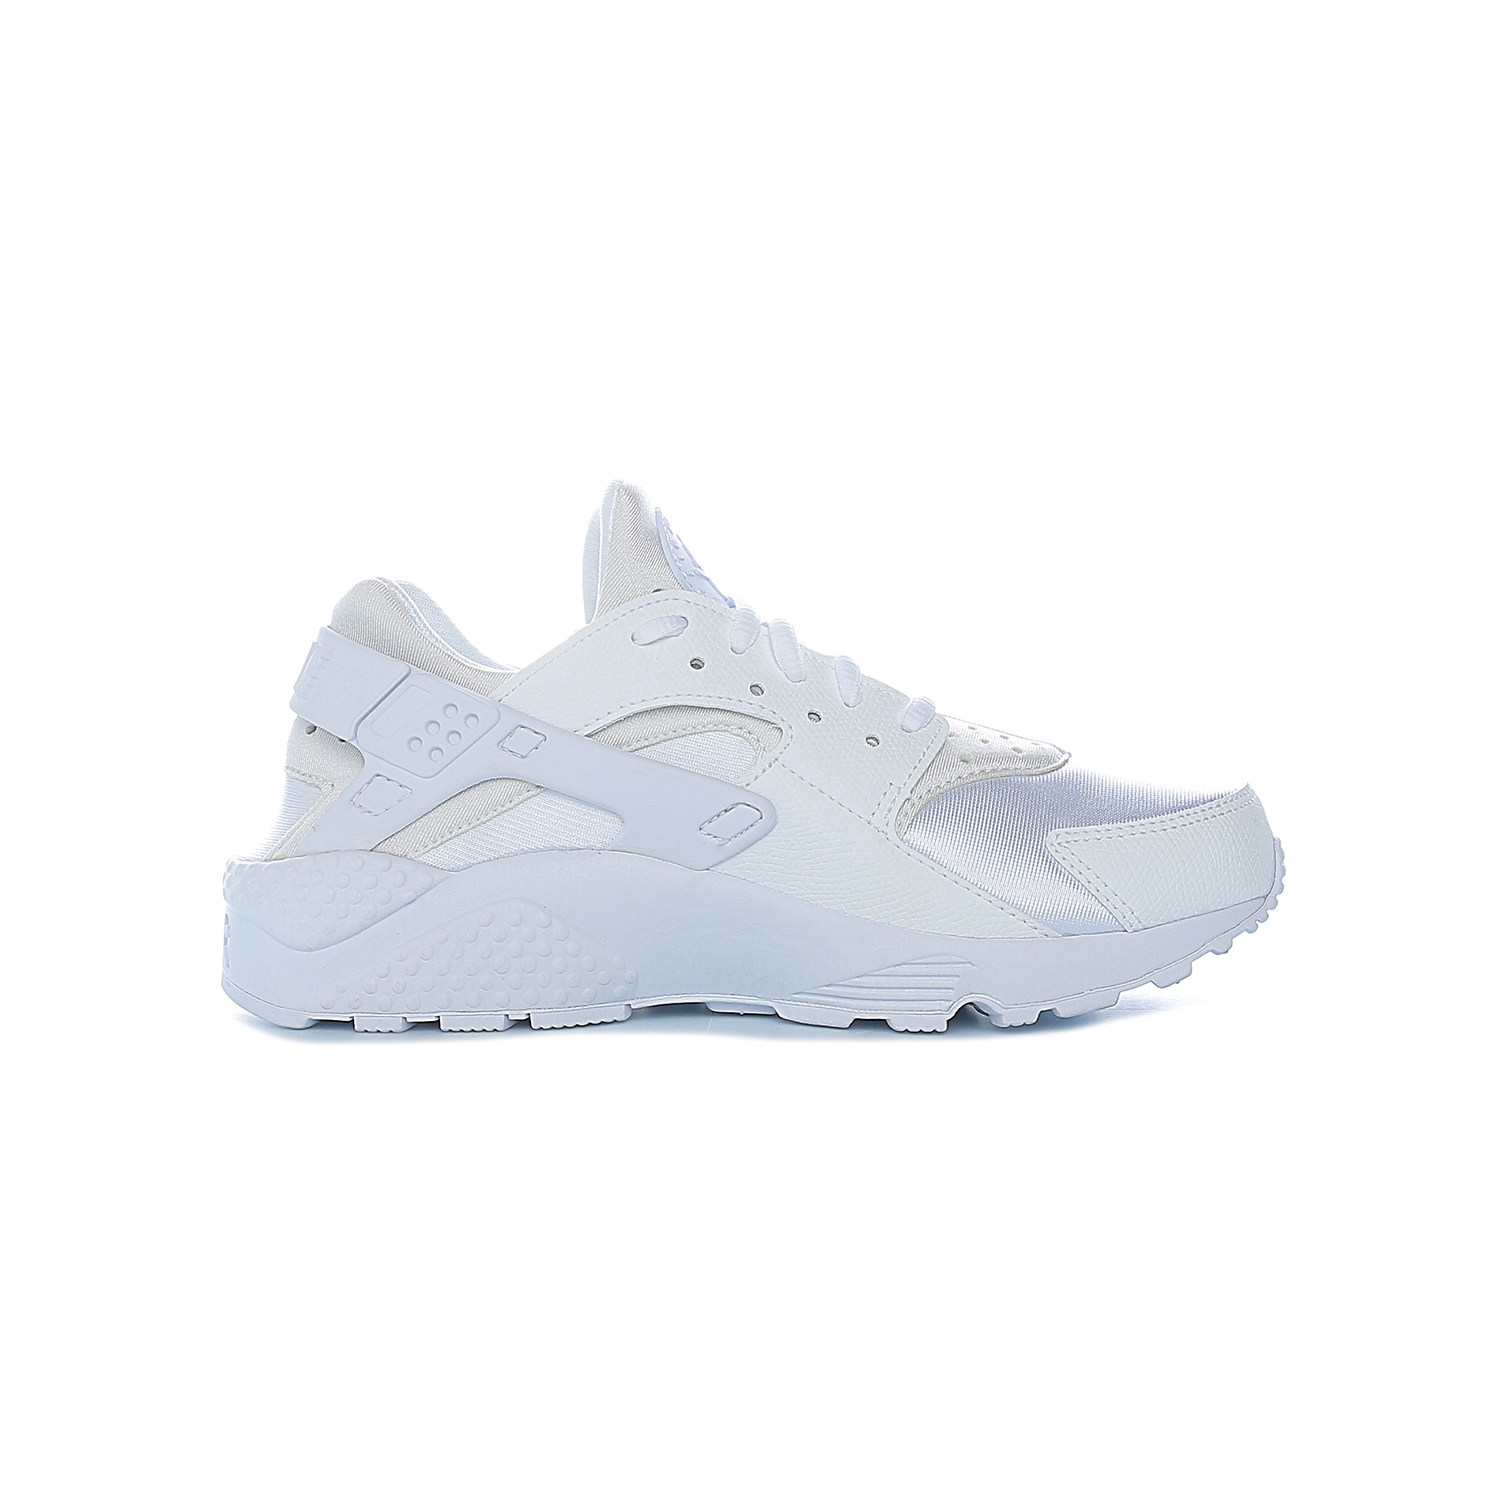 2d7662bbbef -42% Factory Outlet NIKE – Γυναικεία αθλητικά παπούτσια ΝΙΚΕ AIR HUARACHE  RUN λευκά